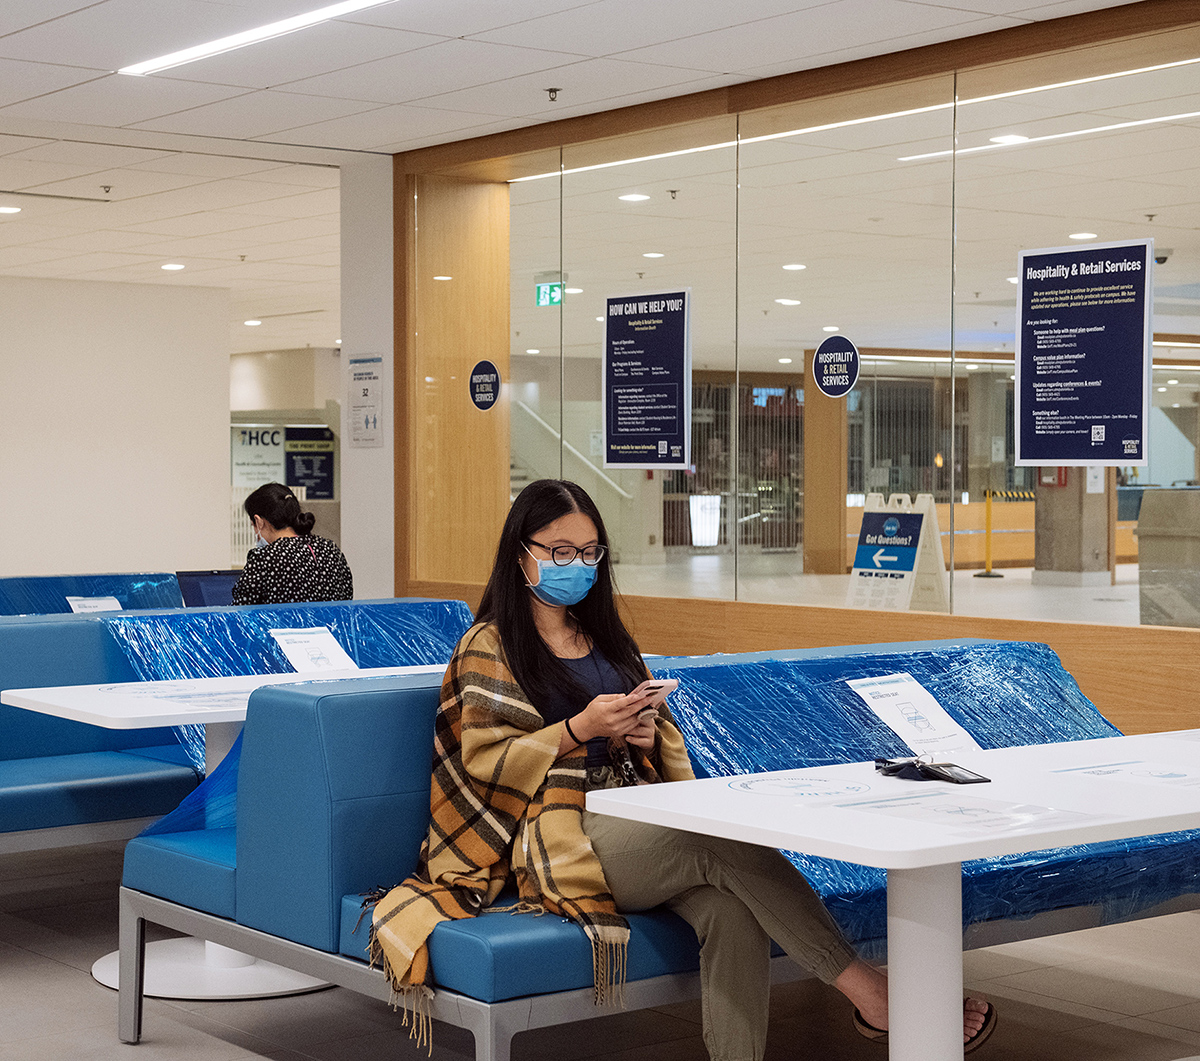 Shirley Liu in a student lounge, looking at her phone while sitting on a blue bench half-covered with plastic wrap